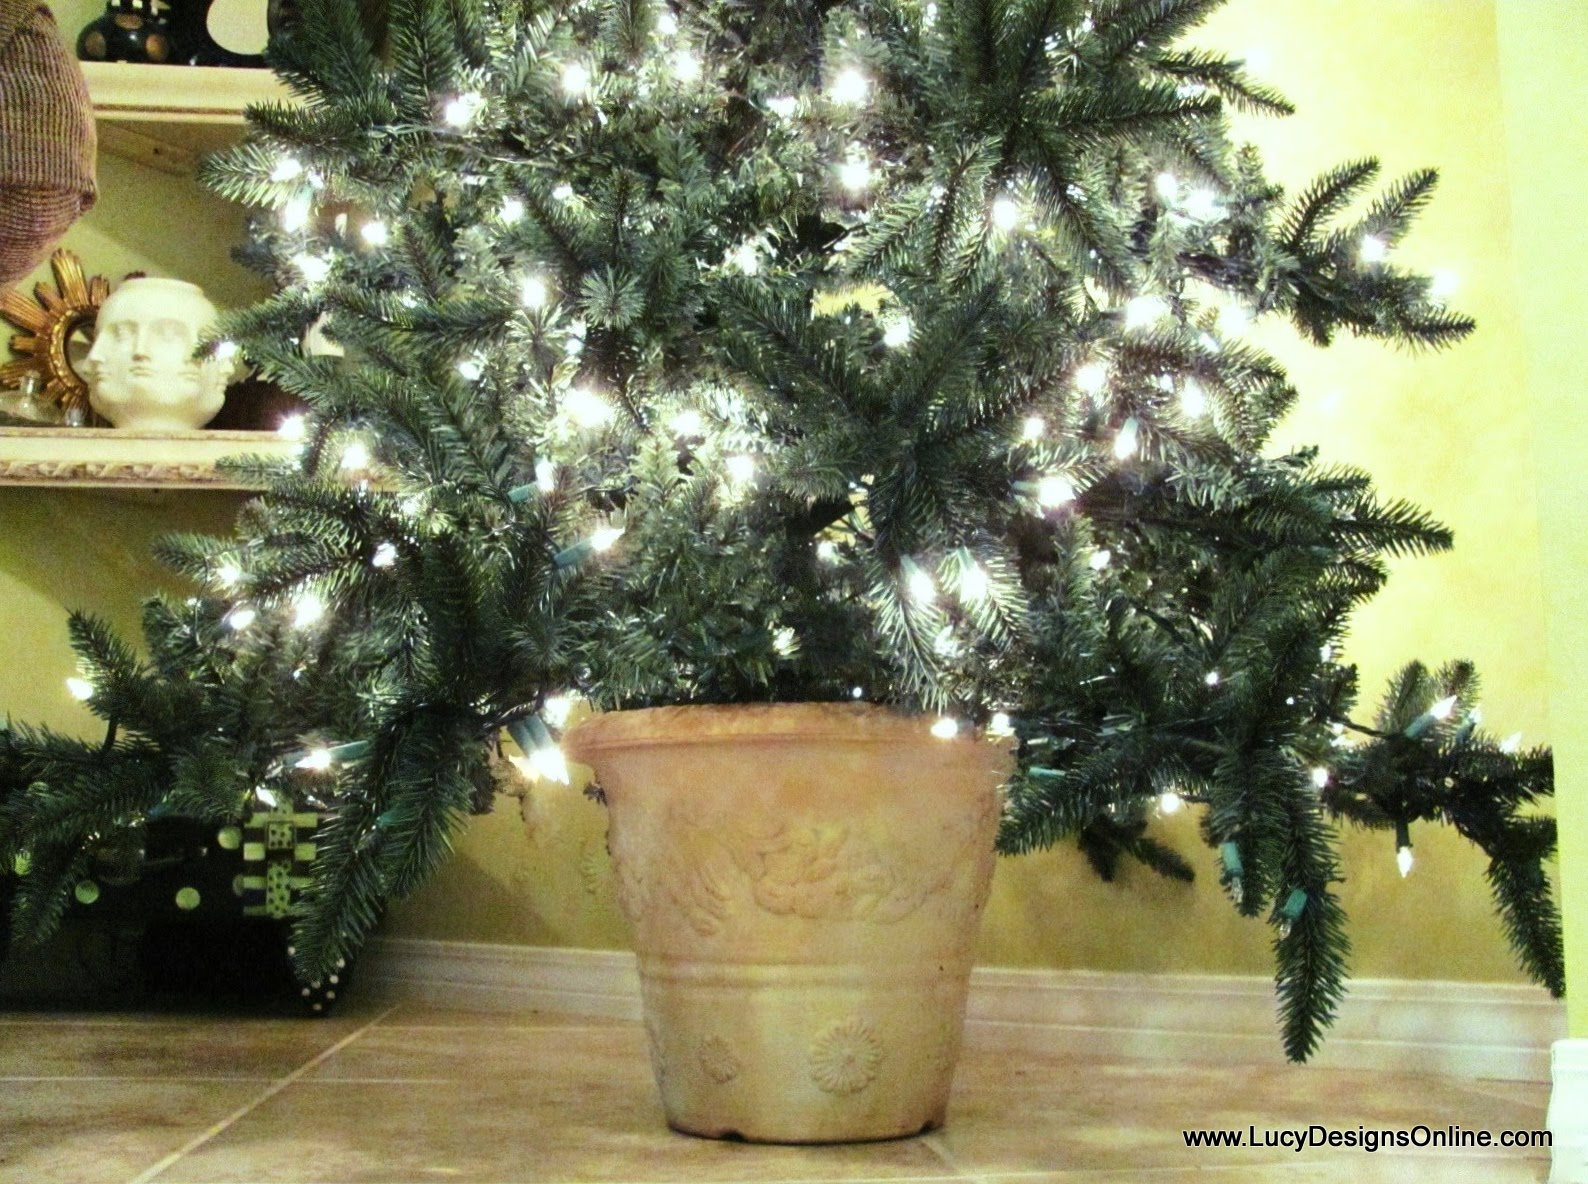 Artificial Christmas Tree In A Planter Pot DIY